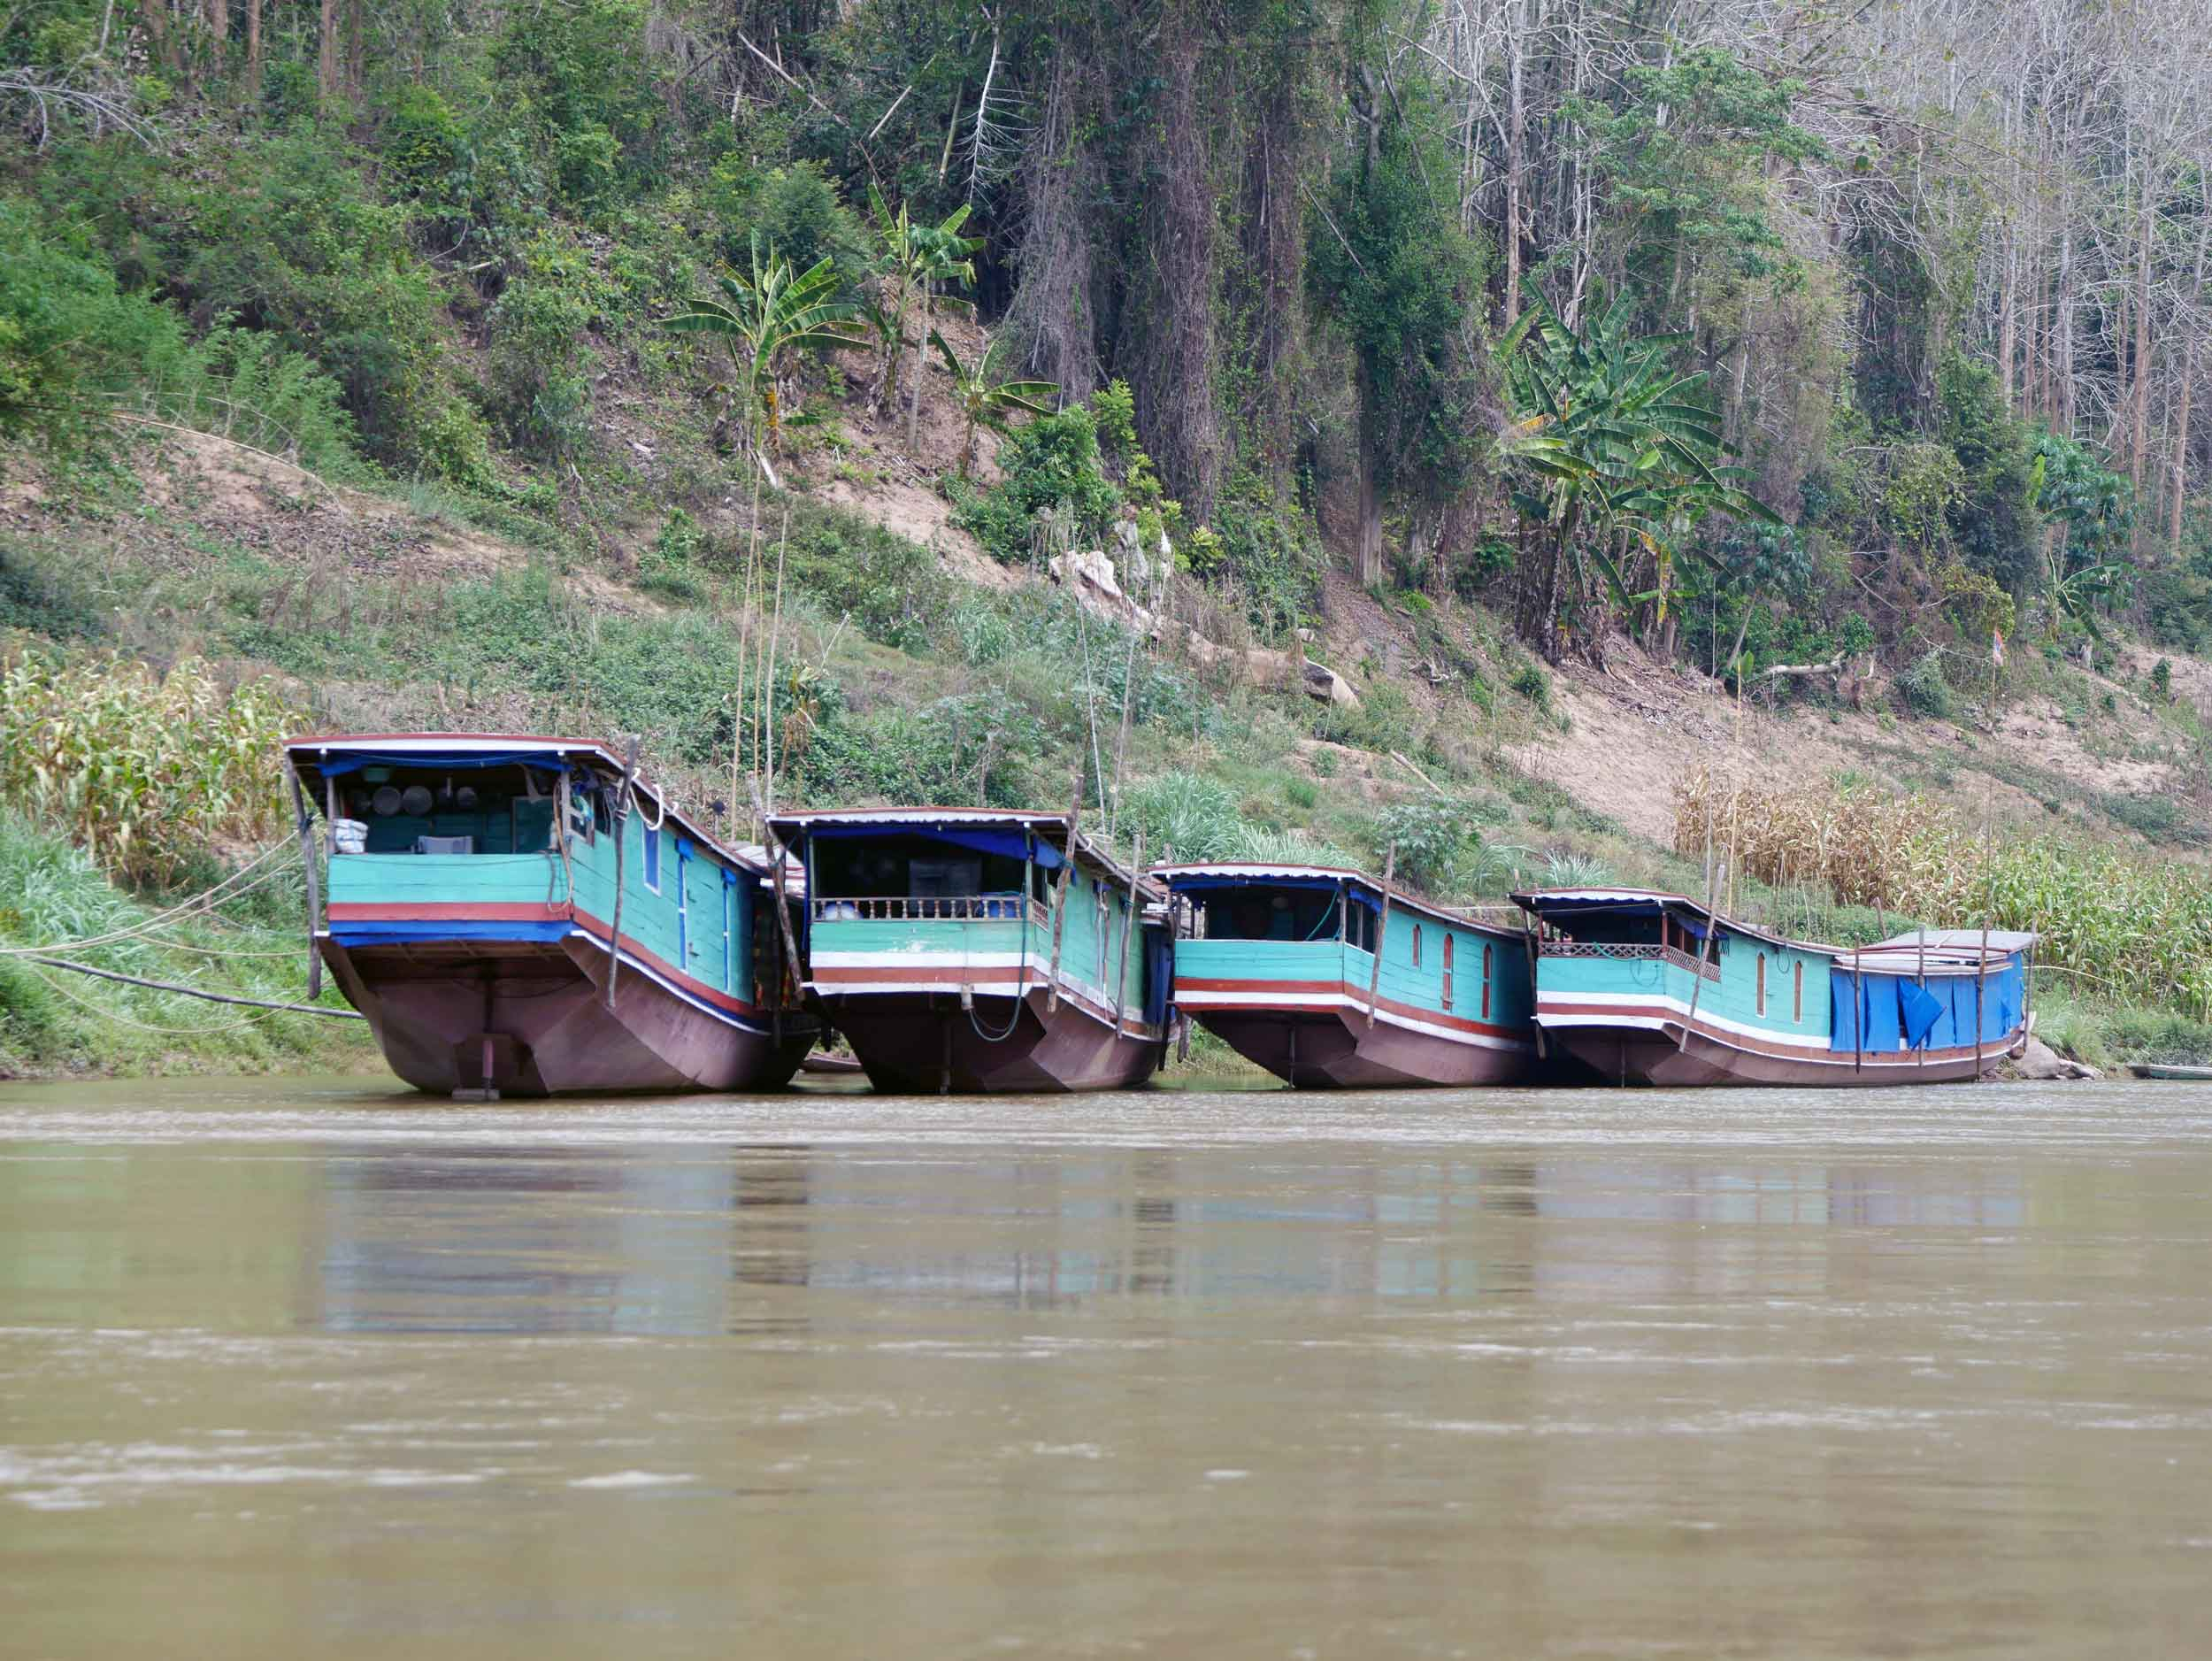 Several slow boats parked along the river's edge.